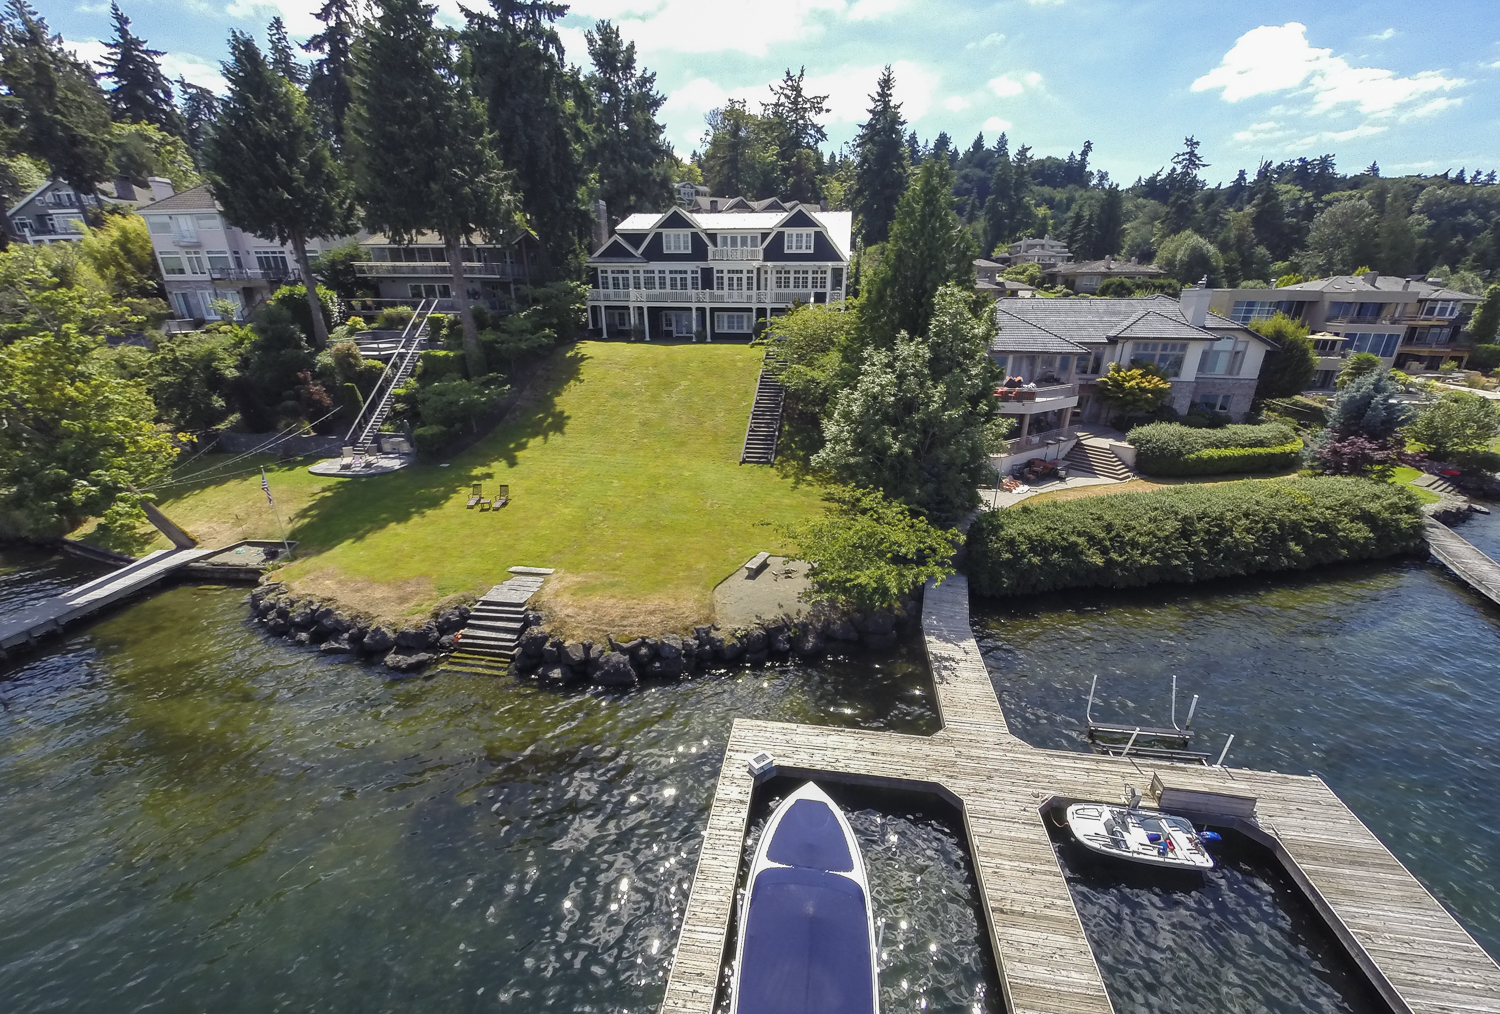 8908 North Mercer Way, Mercer Island                 Sold for $6,750,000   Represented the Seller  5 BD | 4.5 BA